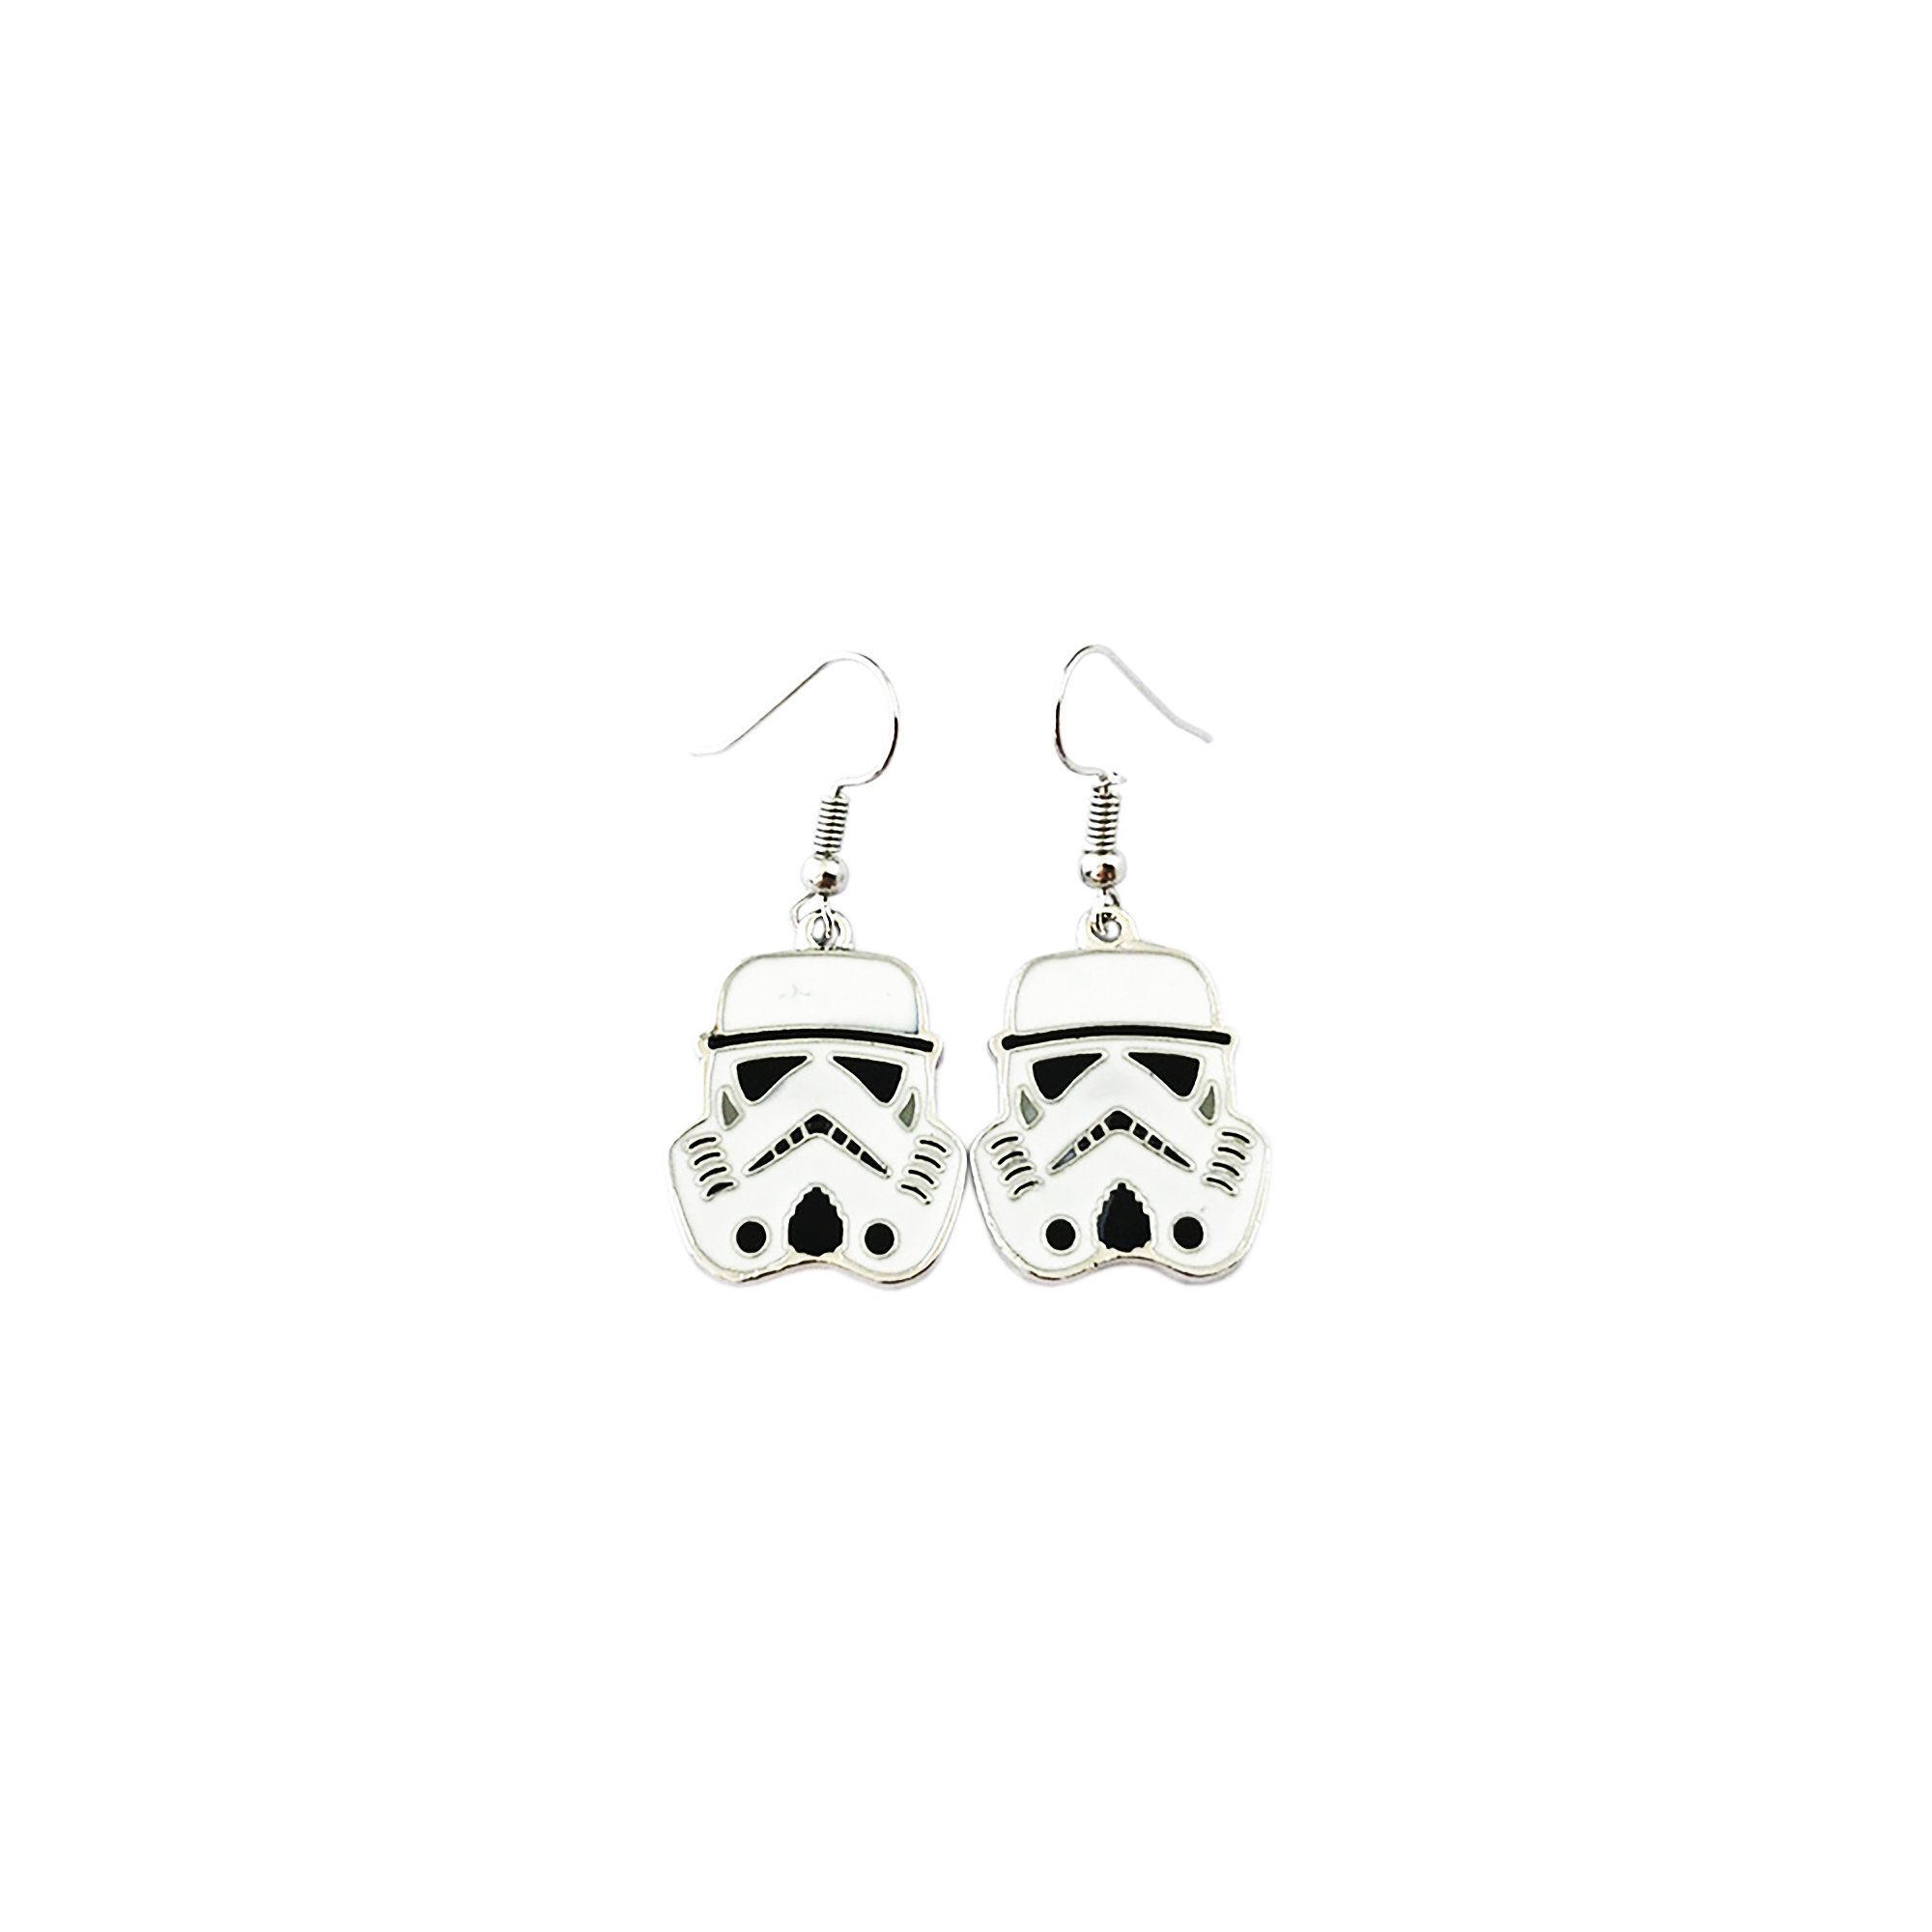 Outlander Star Wars Stormtrooper Color Earring Dangles In Gift Box From